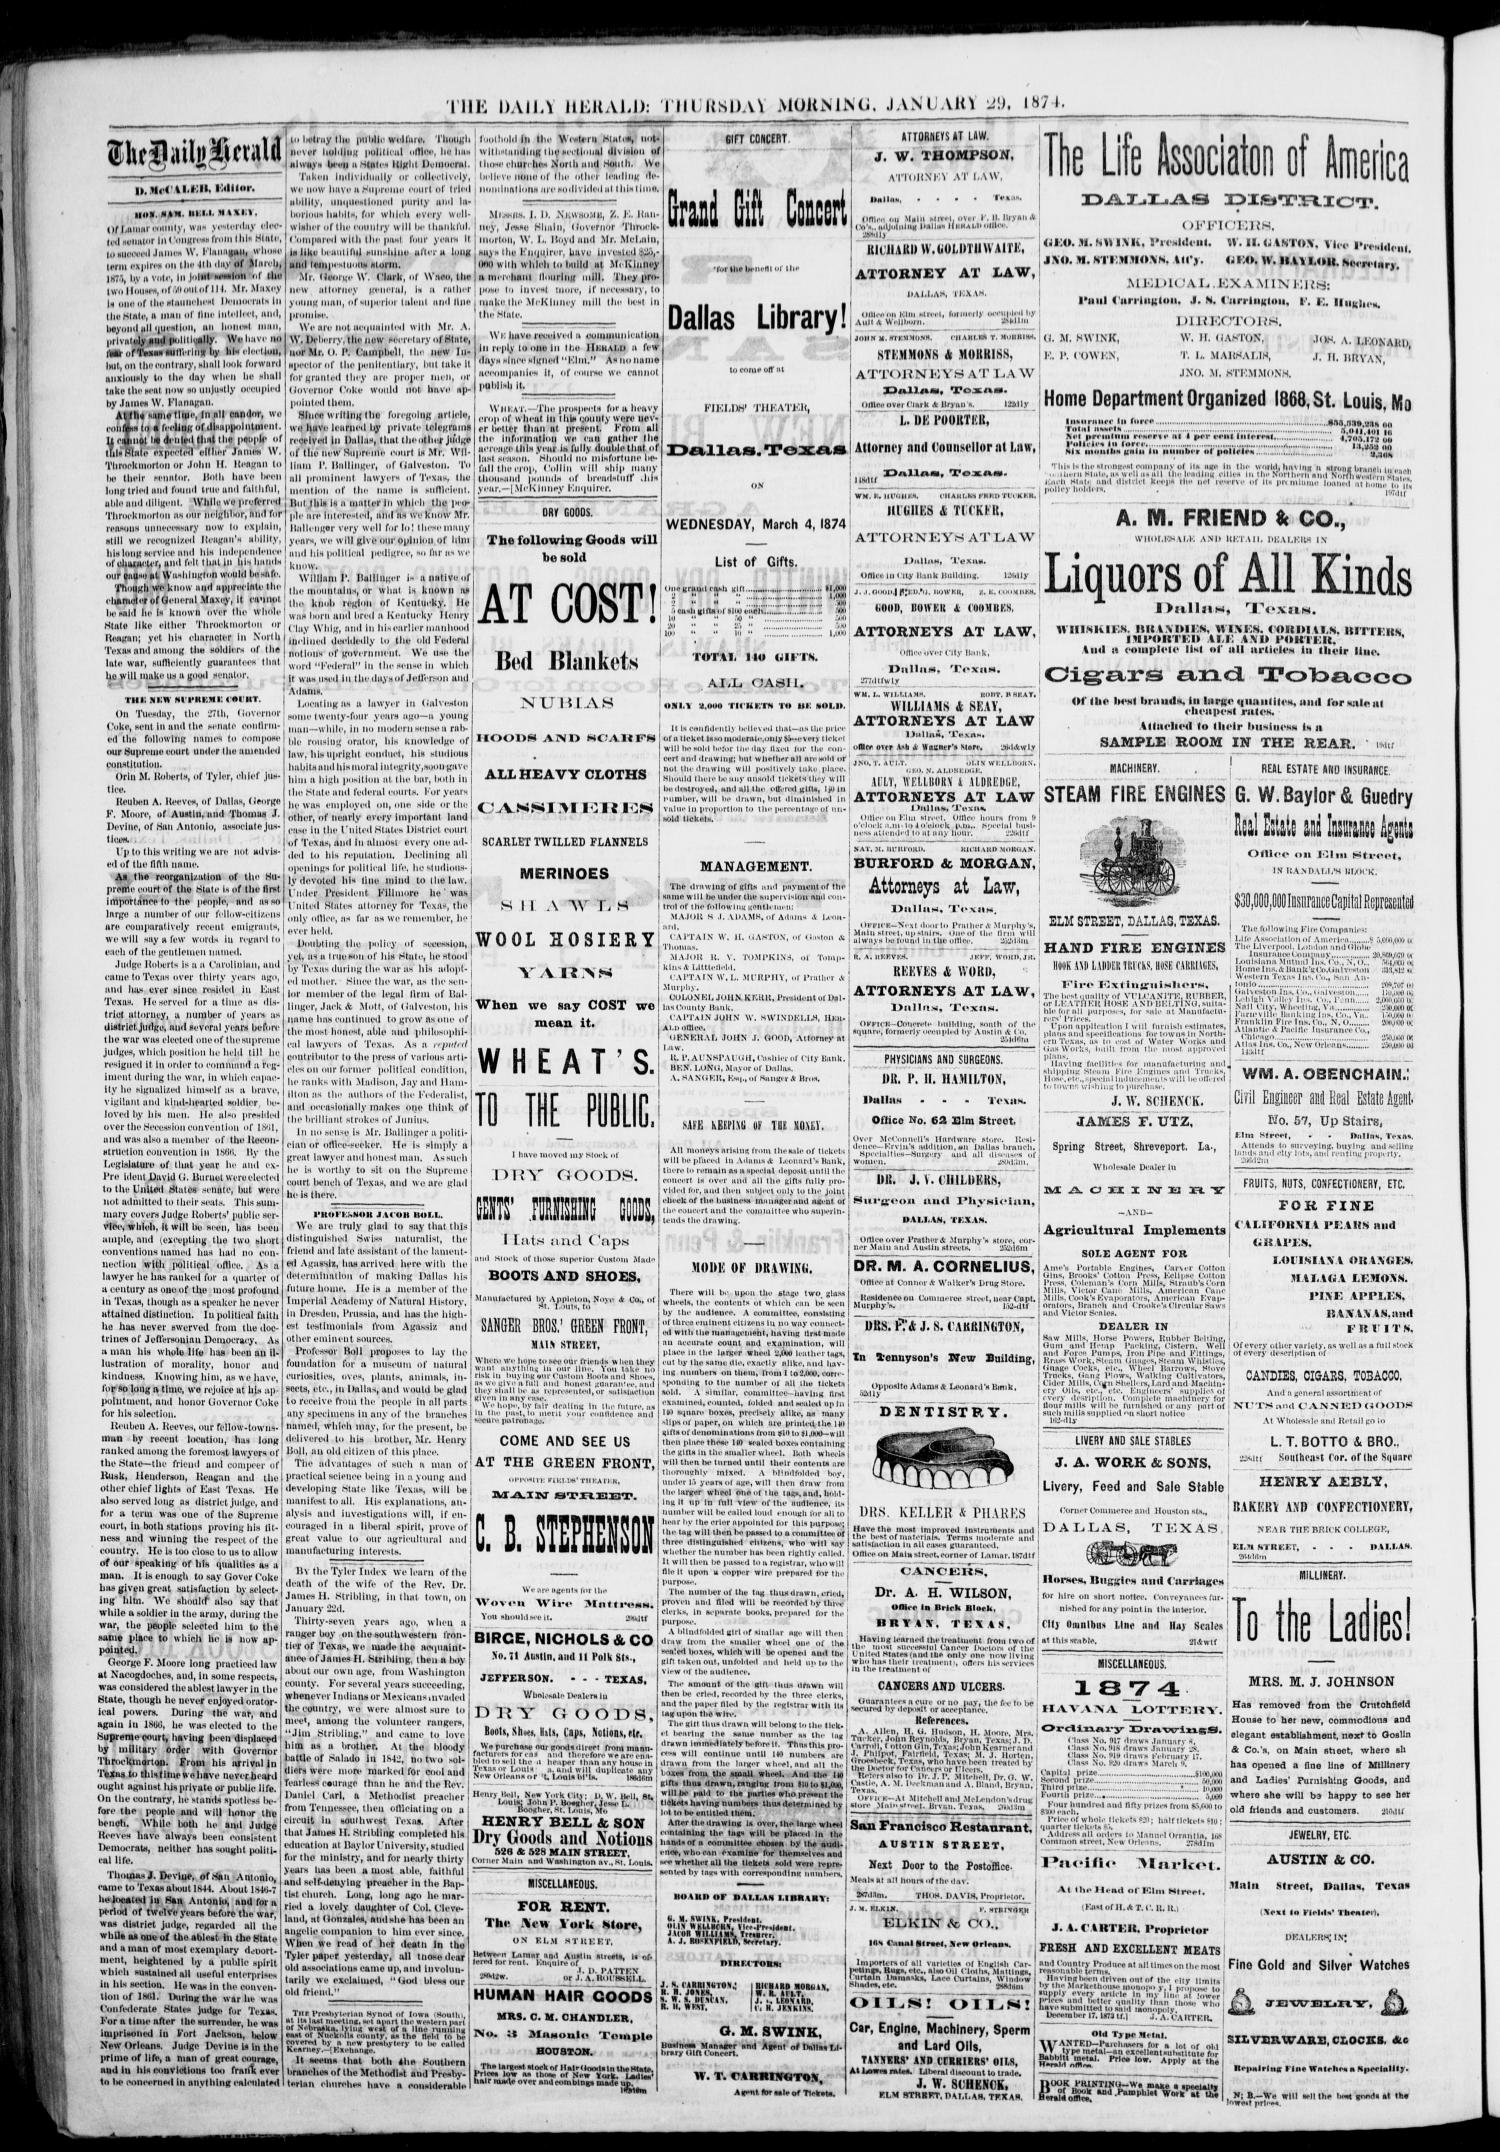 The Dallas Daily Herald Tex Vol 1 No 301 Ed Voucher Deposit Kh Rp 500000 Thursday January 29 1874 Page 2 Of 4 Portal To Texas History